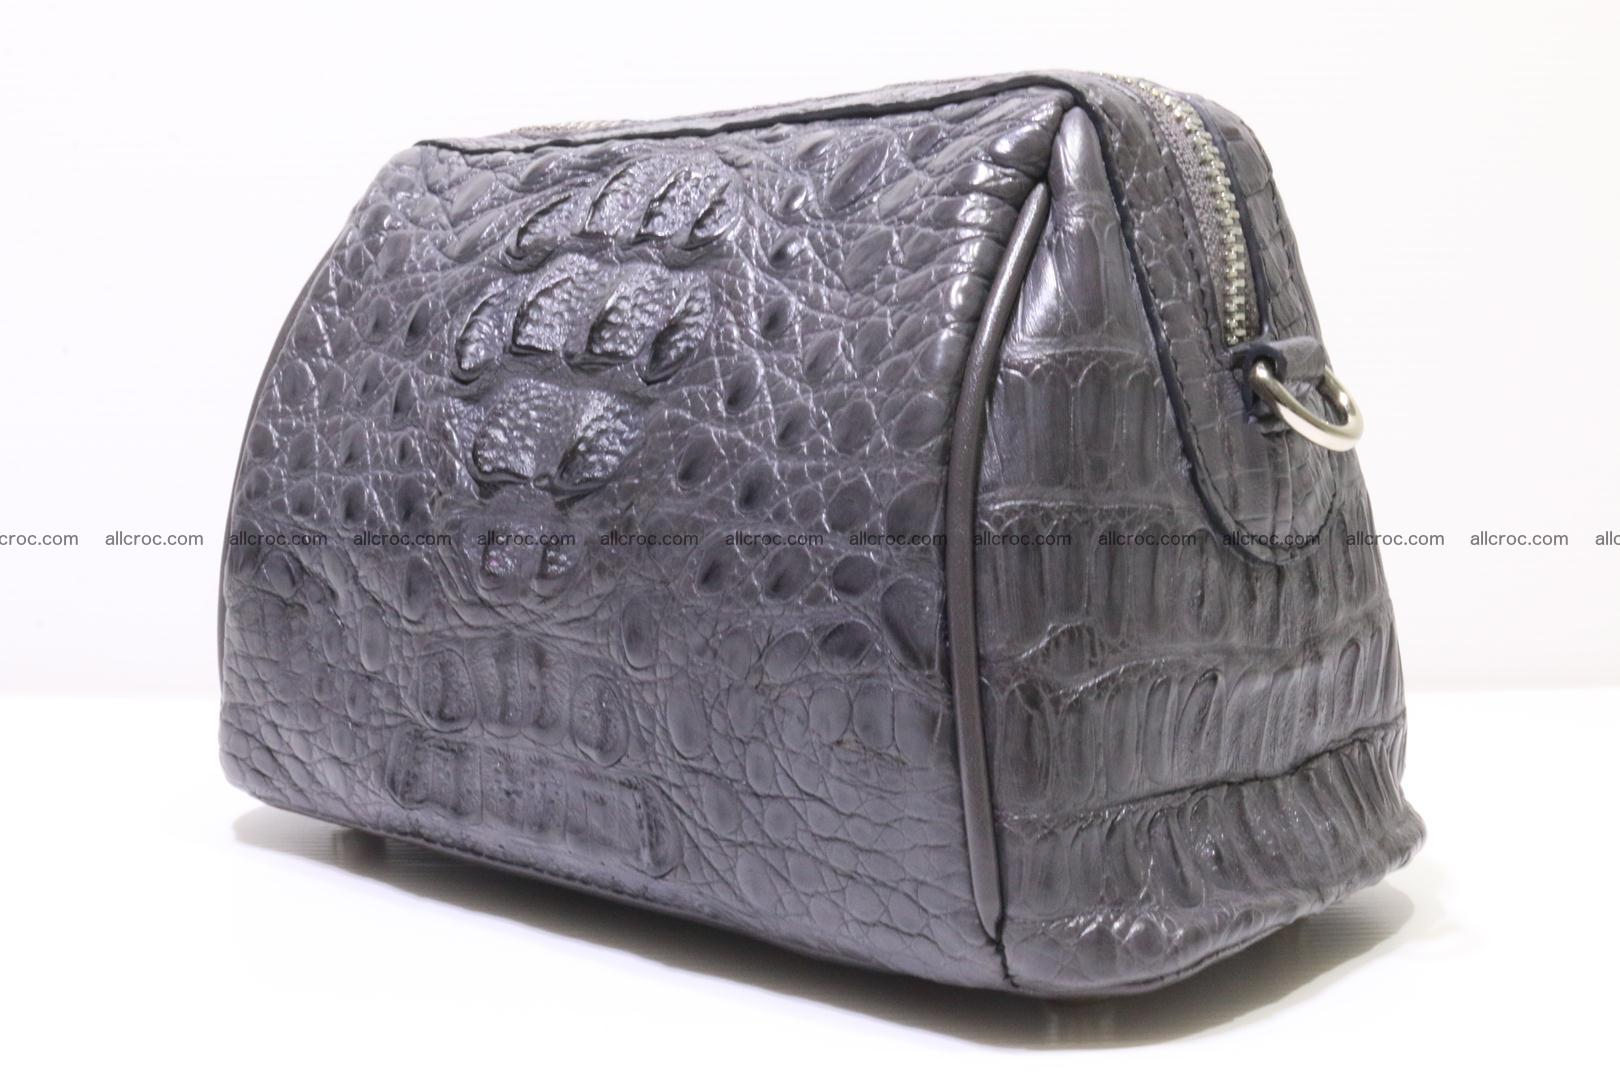 women's crocodile bag 038 Foto 5